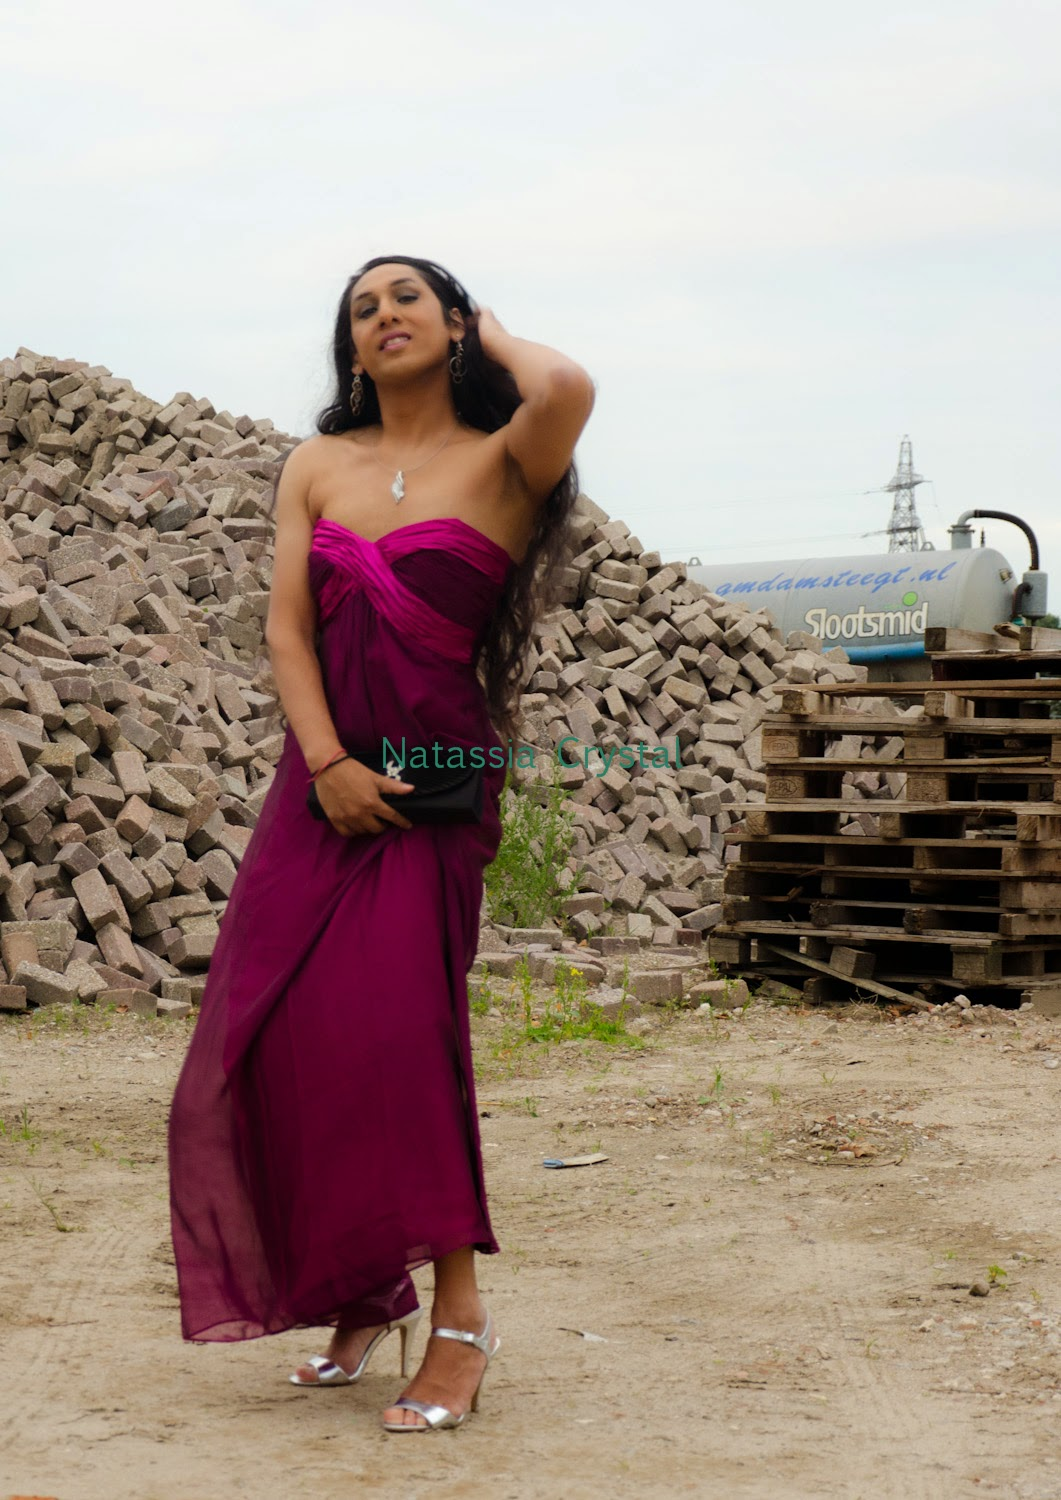 Natassia Crystal natcrys, long purple dress, outside posing in construction yard